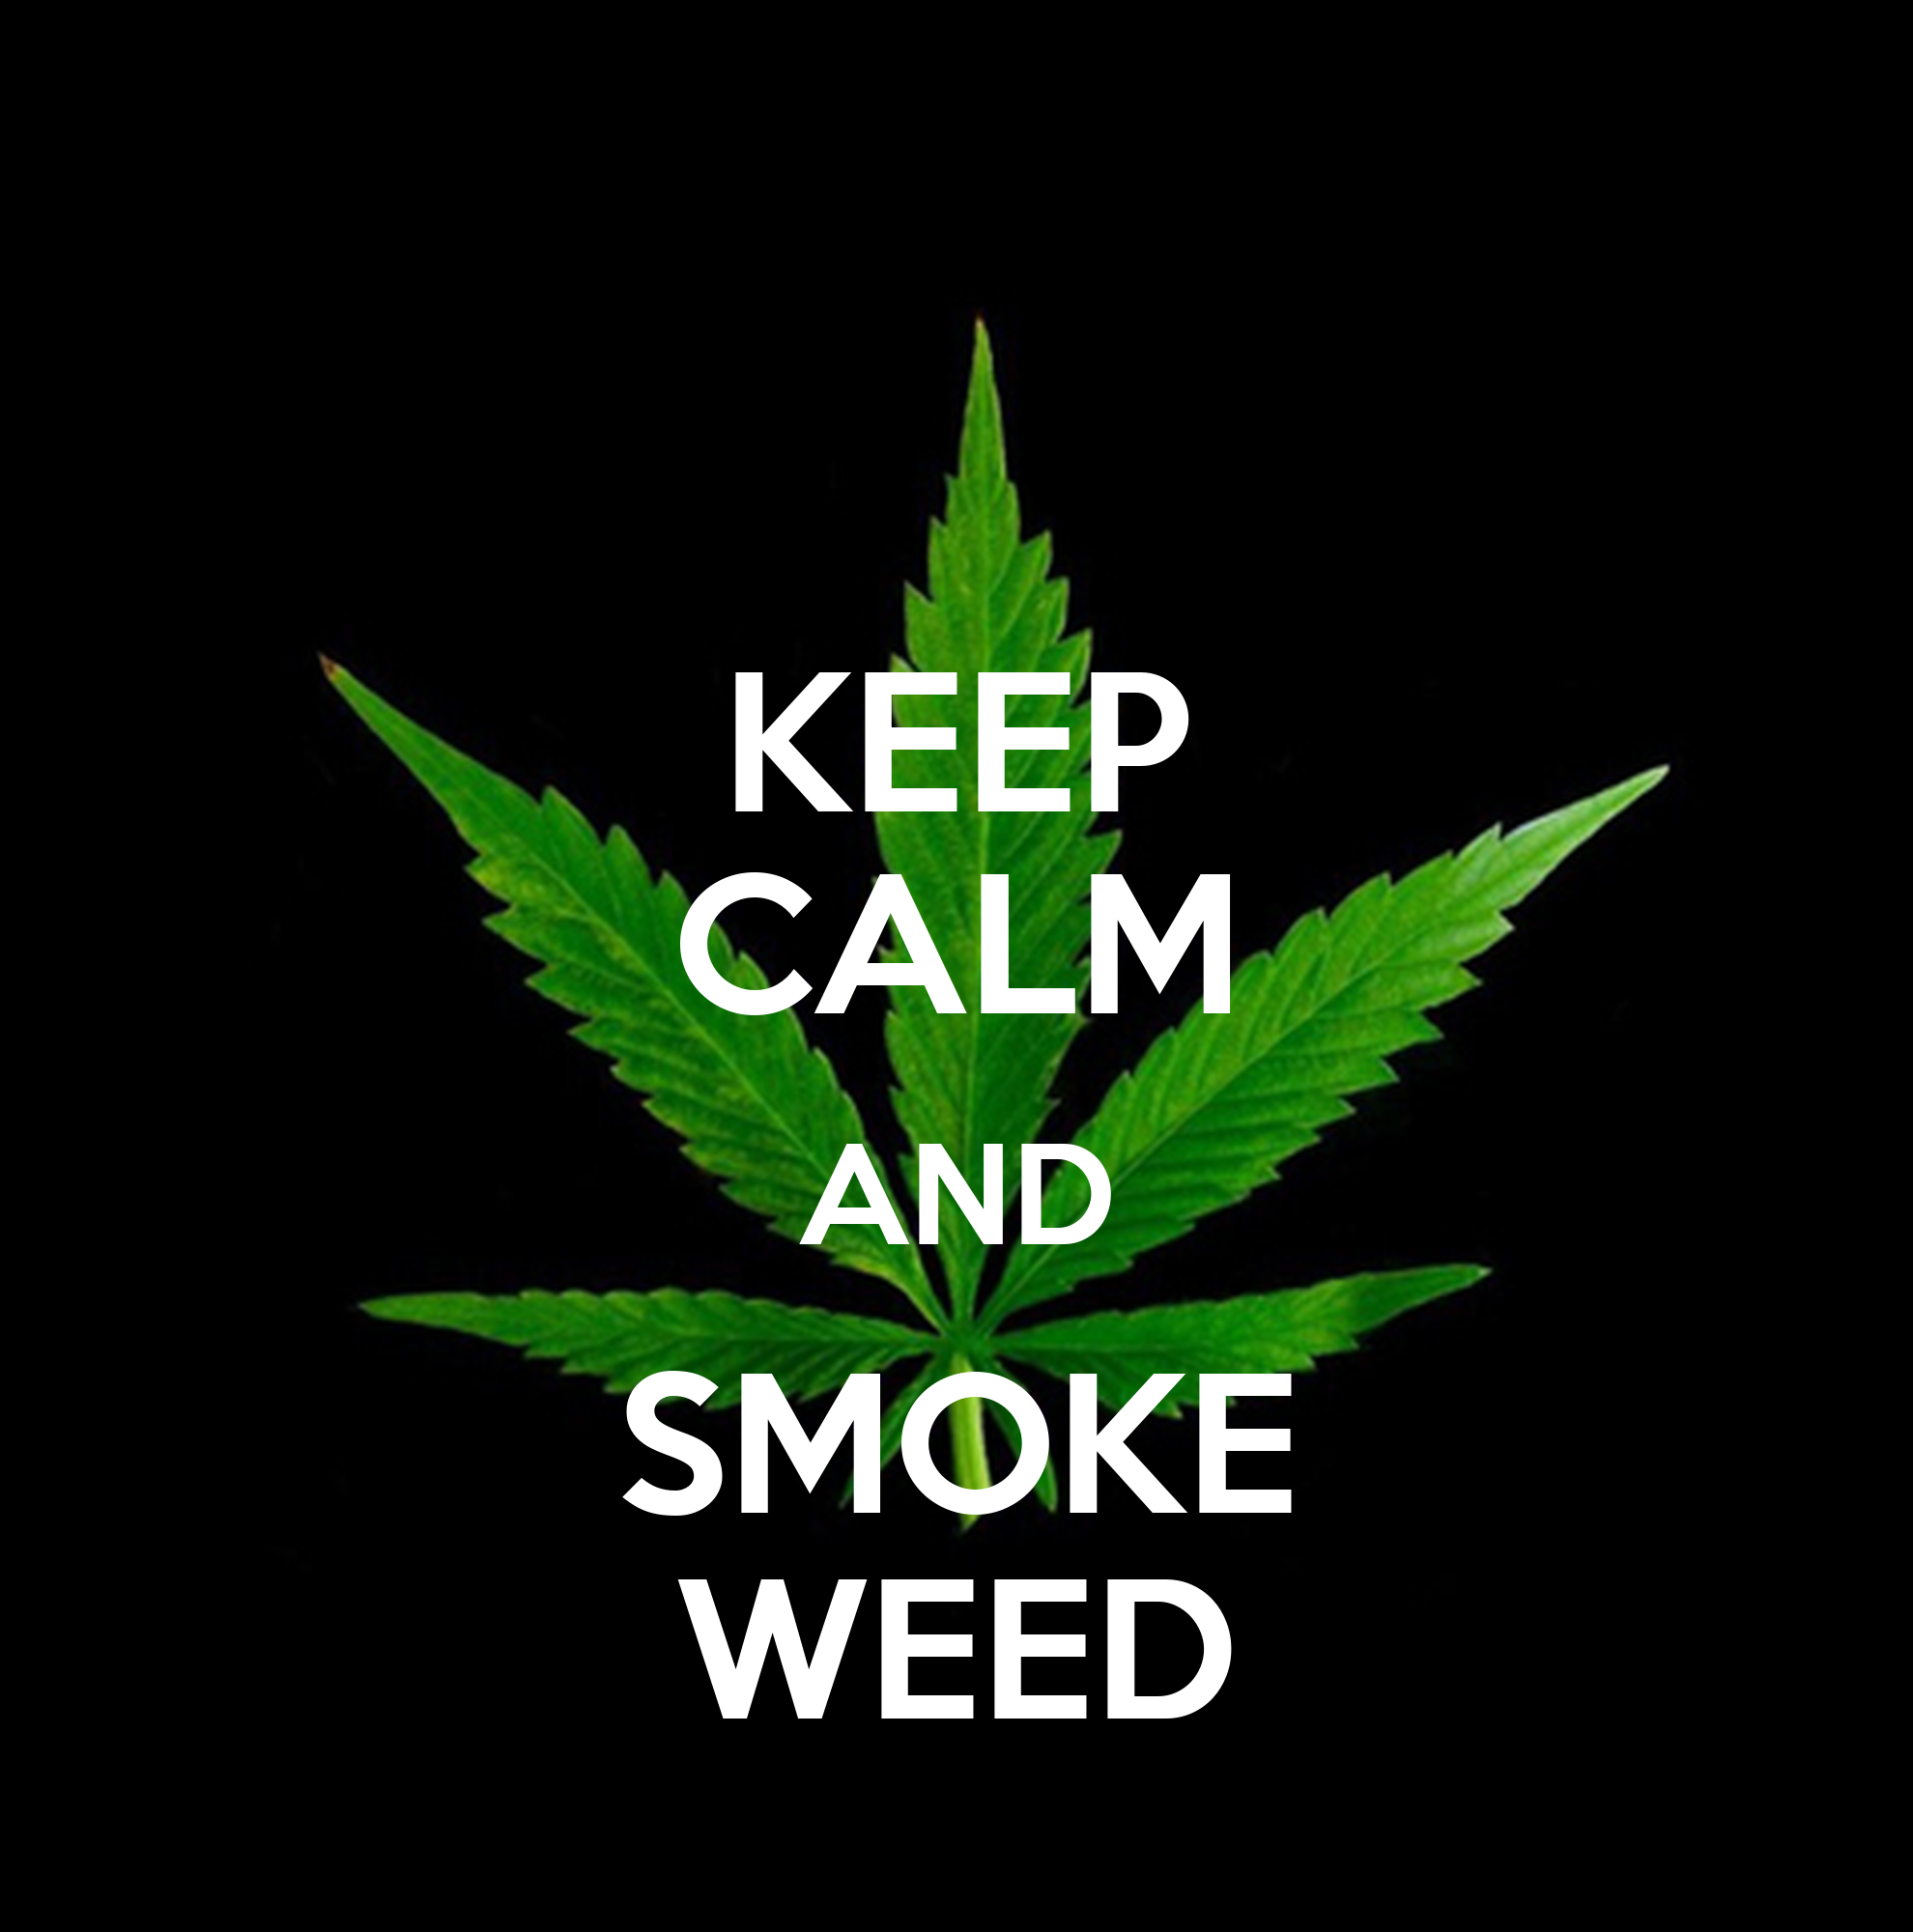 Wall Stickers Childrens Keep Calm And Smoke Weed 1608 Png